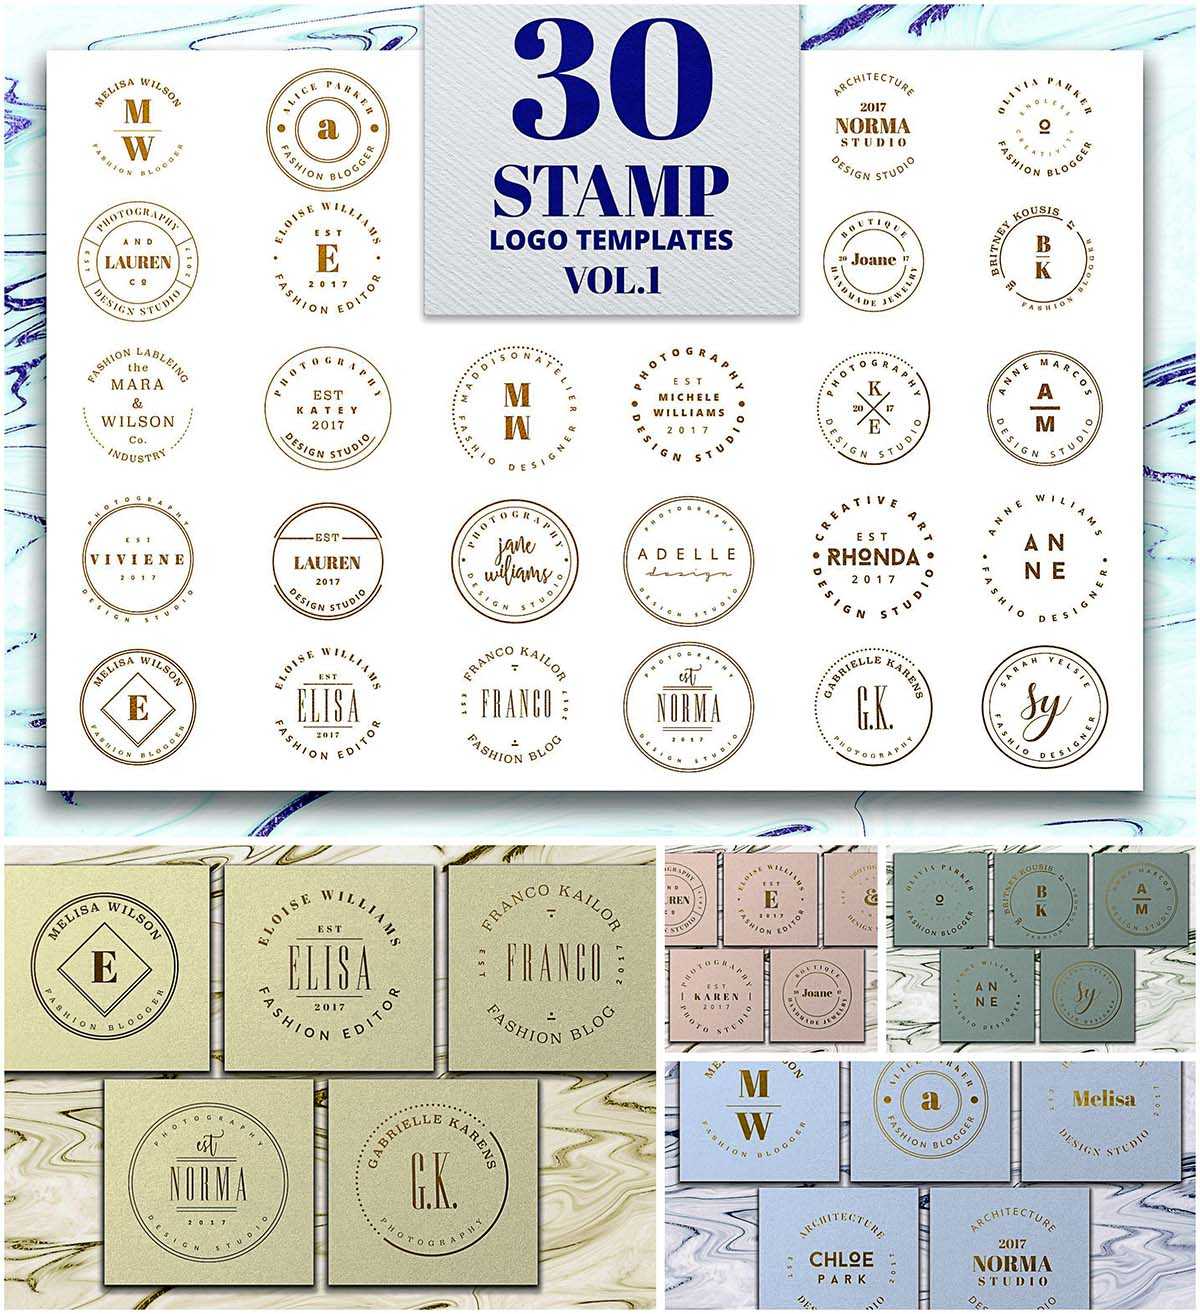 30 stamp logo templates